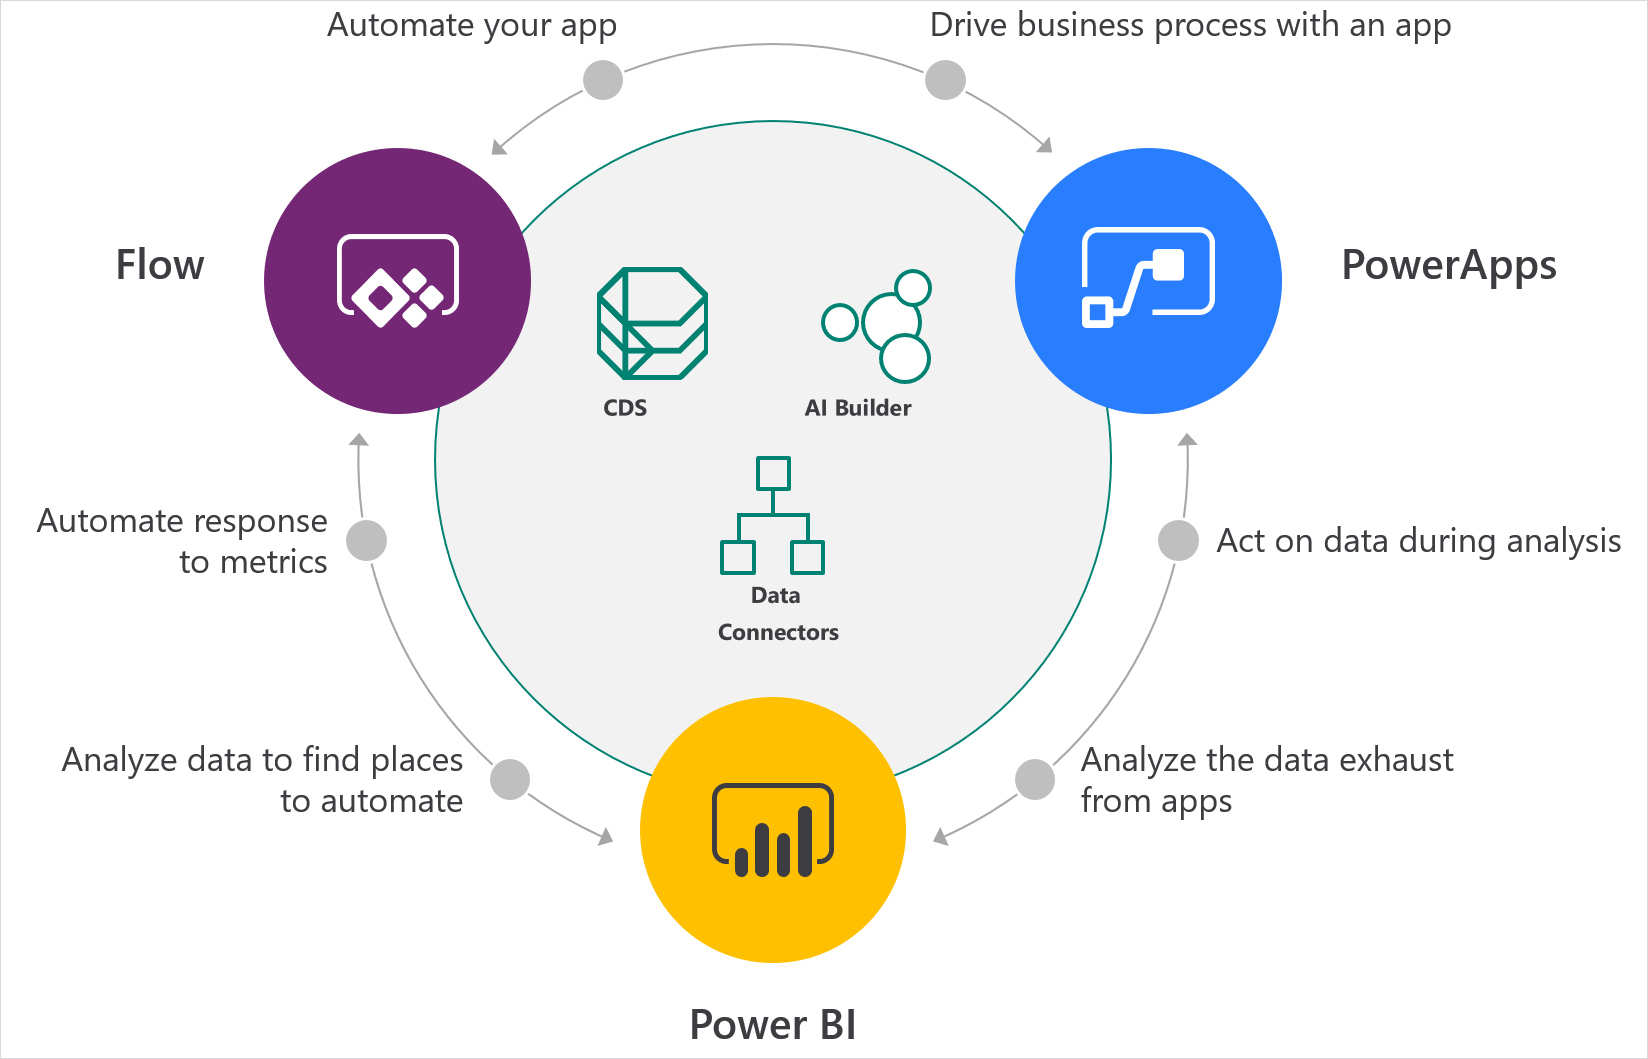 Diagram showing app automation driving business processes with Flow. The diagram shows Flow, PowerApps, and Power BI circling CDS, AI Builder, and Data Connectors.